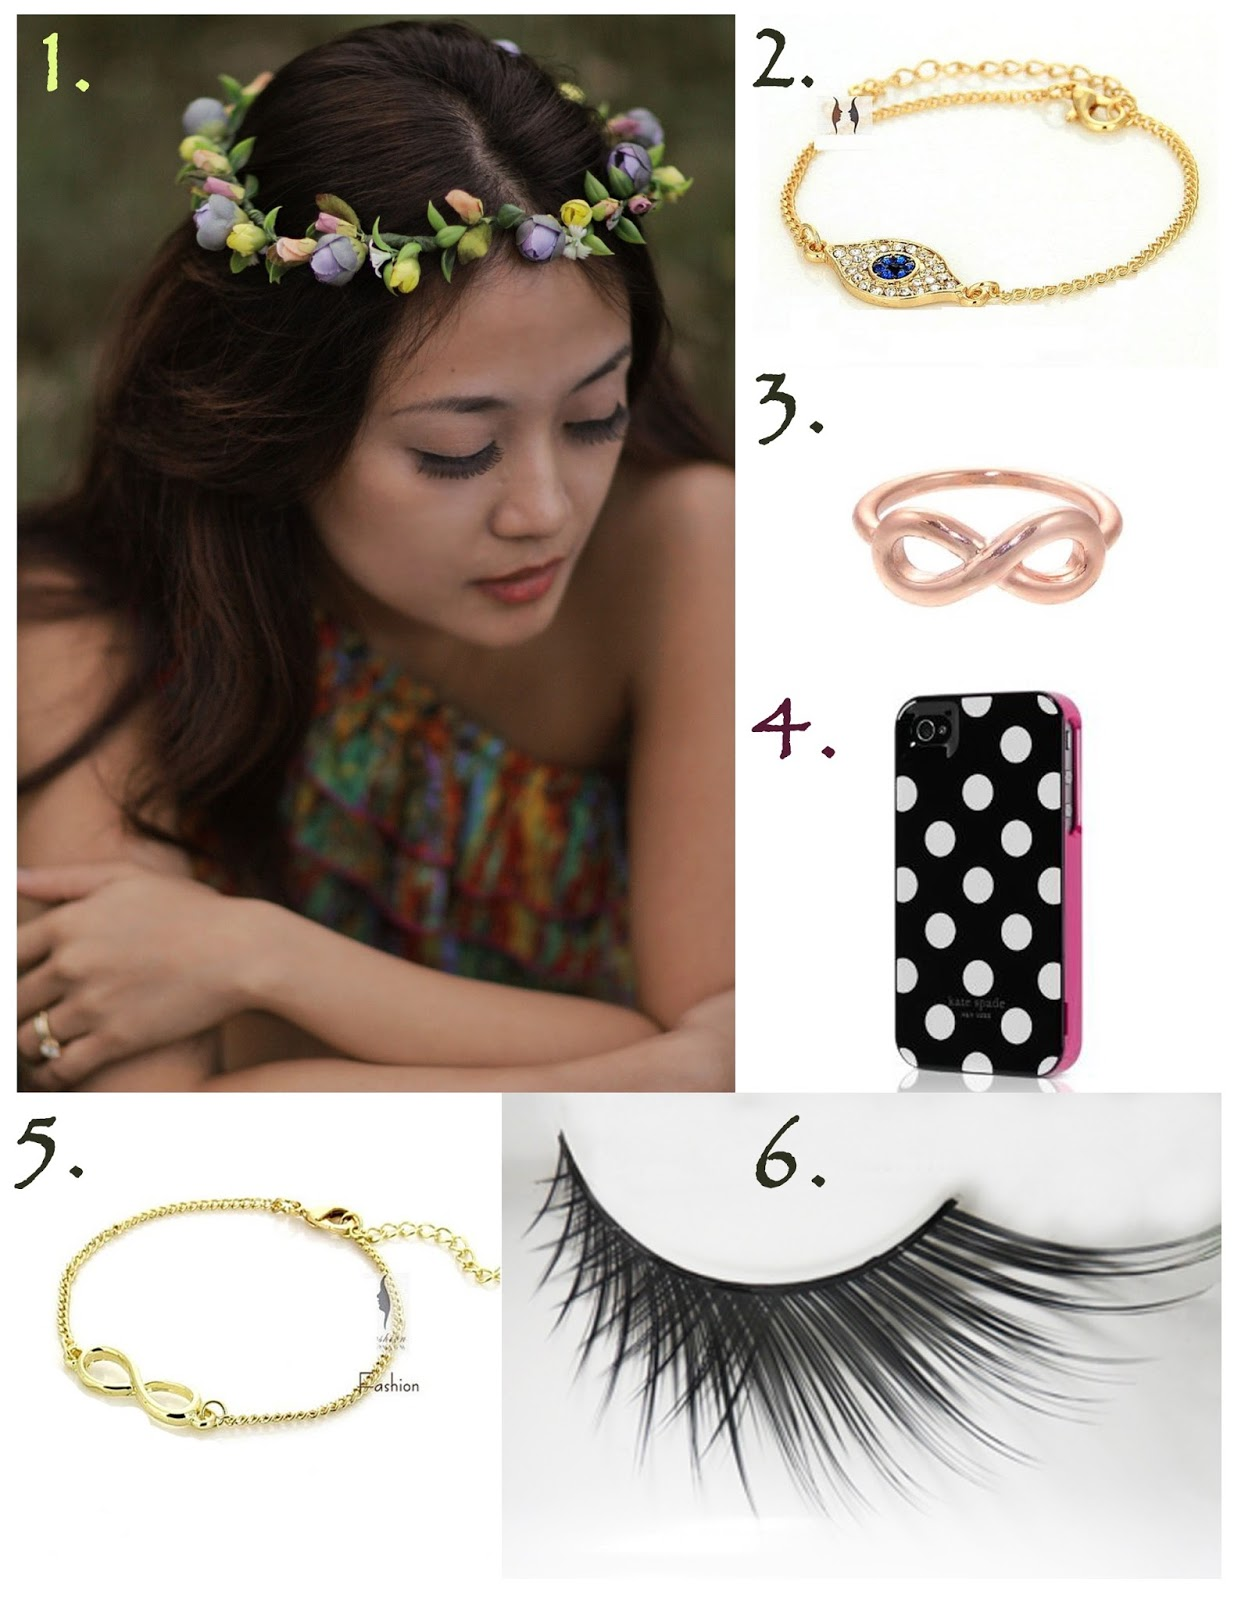 flower, wreath, evil eye, accessories, infinity, knuckle ring, bracelet, falsies, kate spade, iphone case, false eyellashes, online shopping